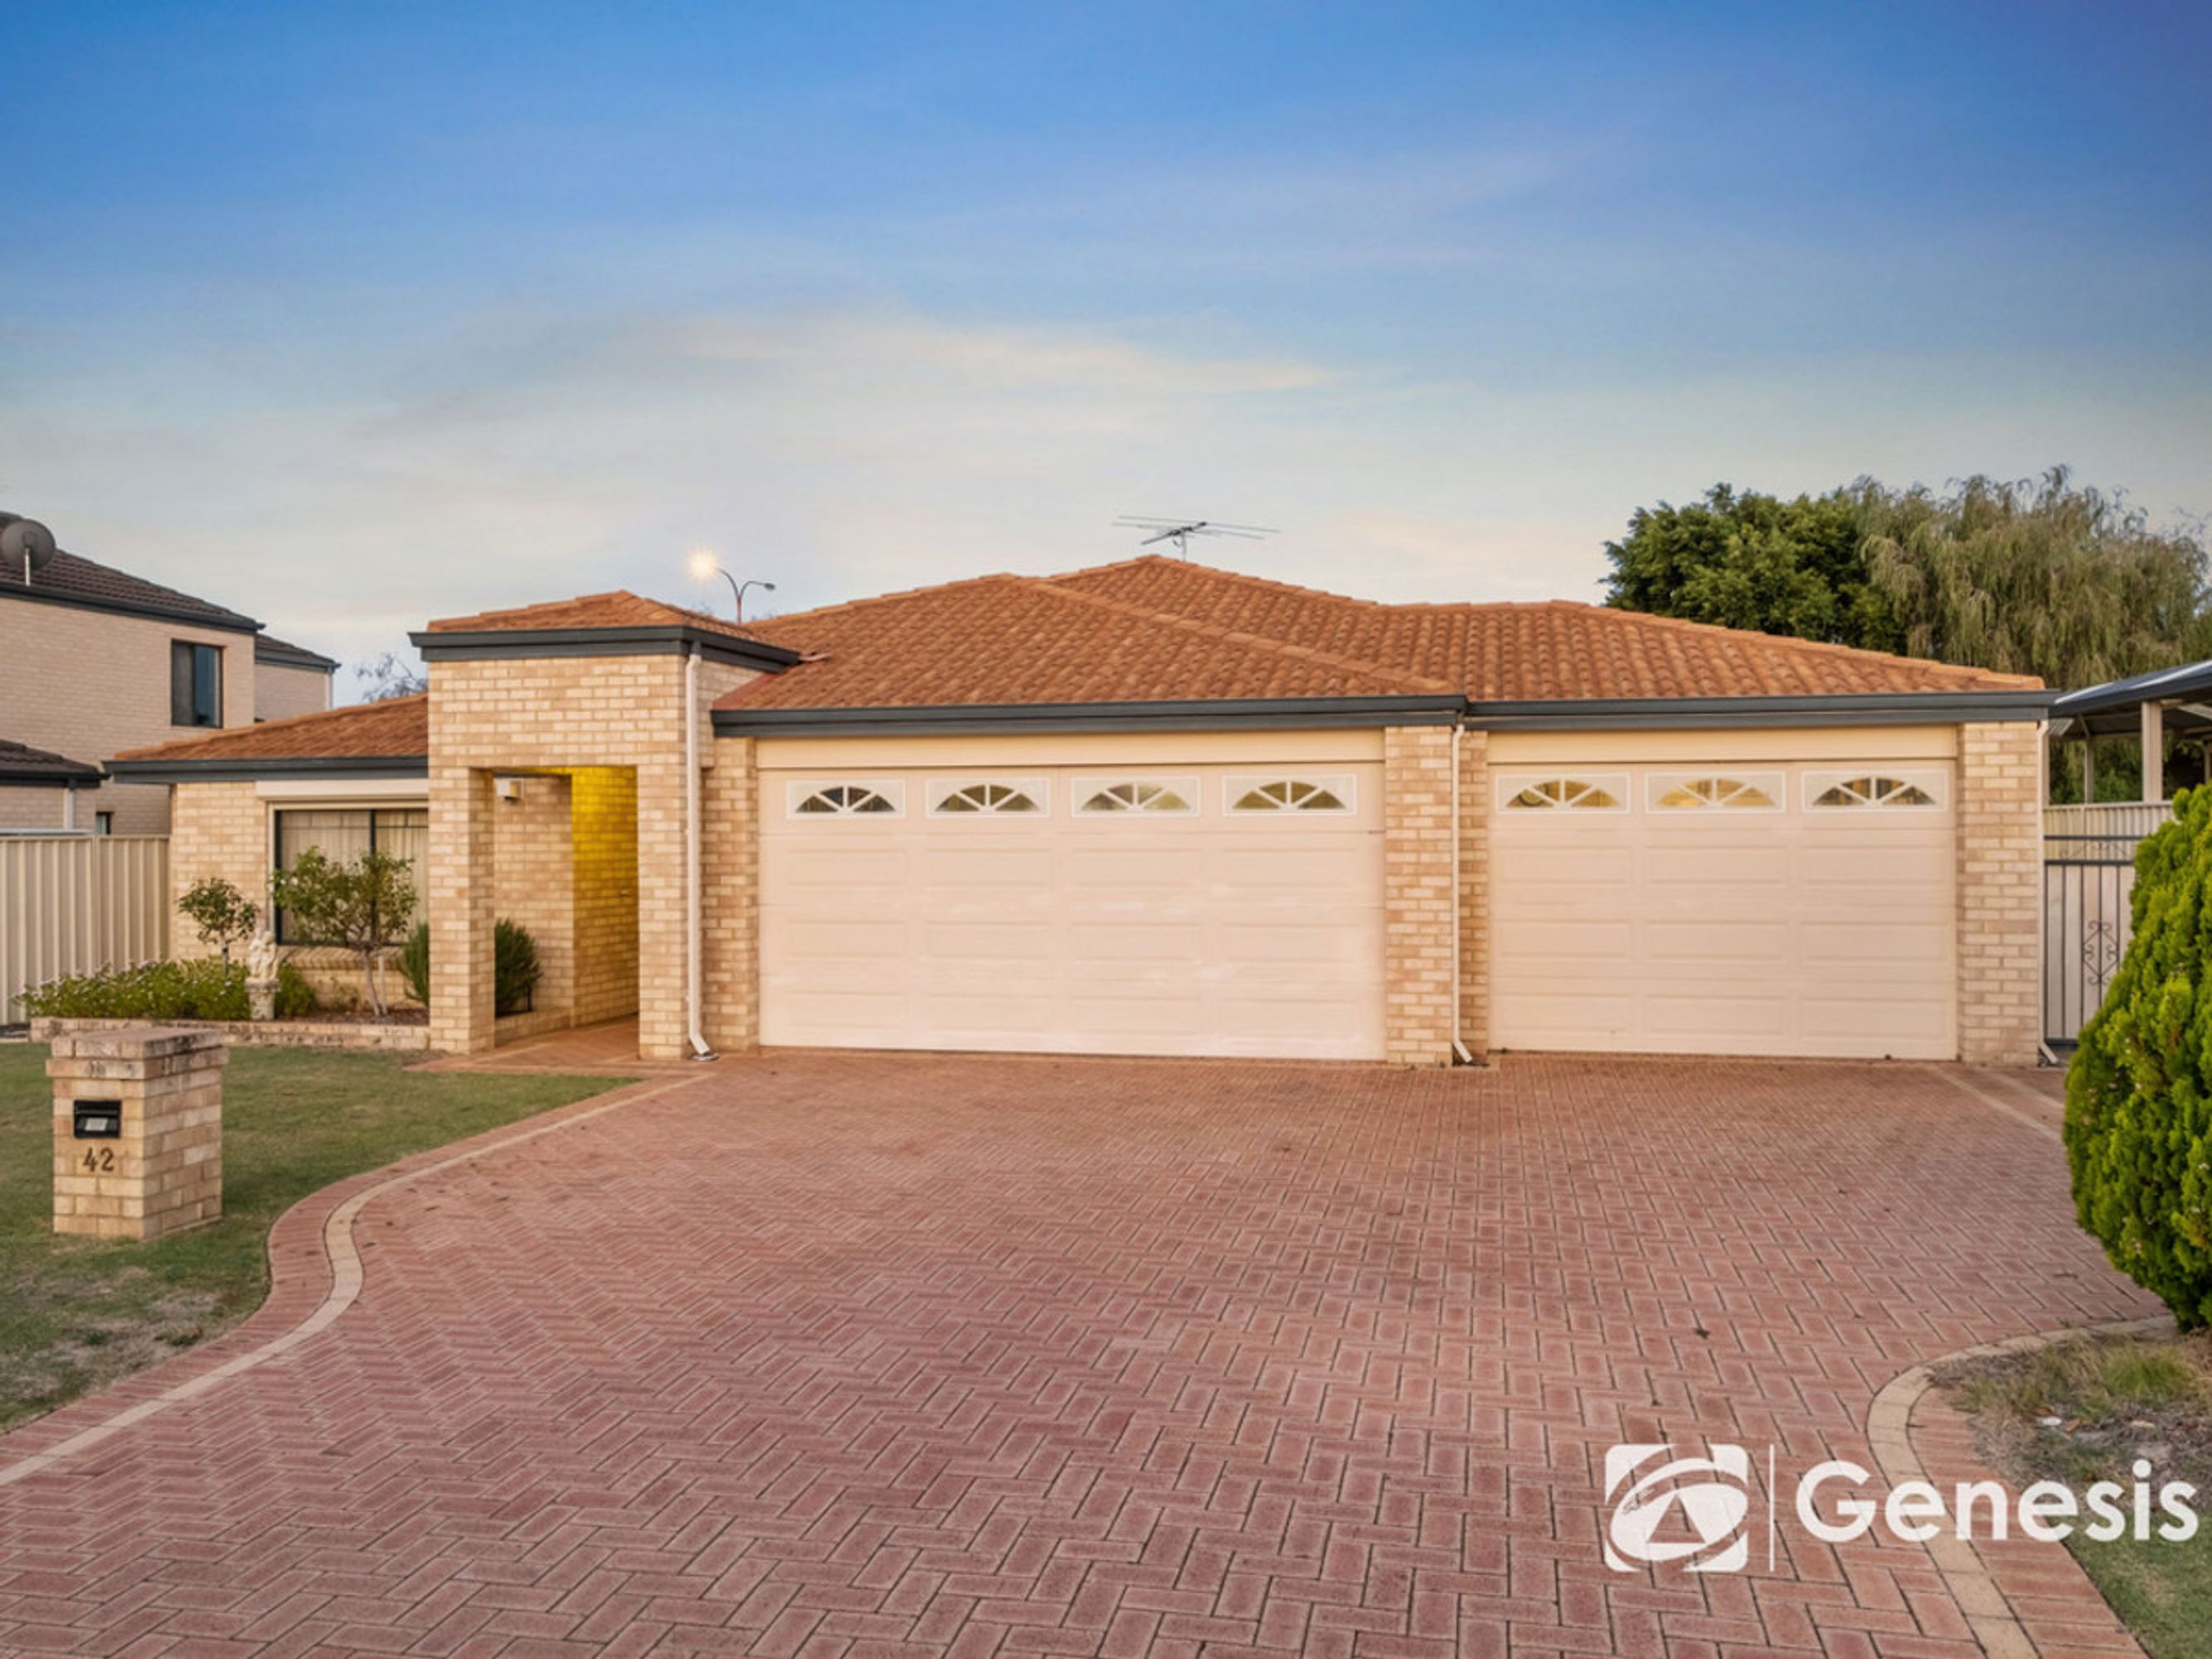 42 Mount Park Way, Canning Vale, WA 6155